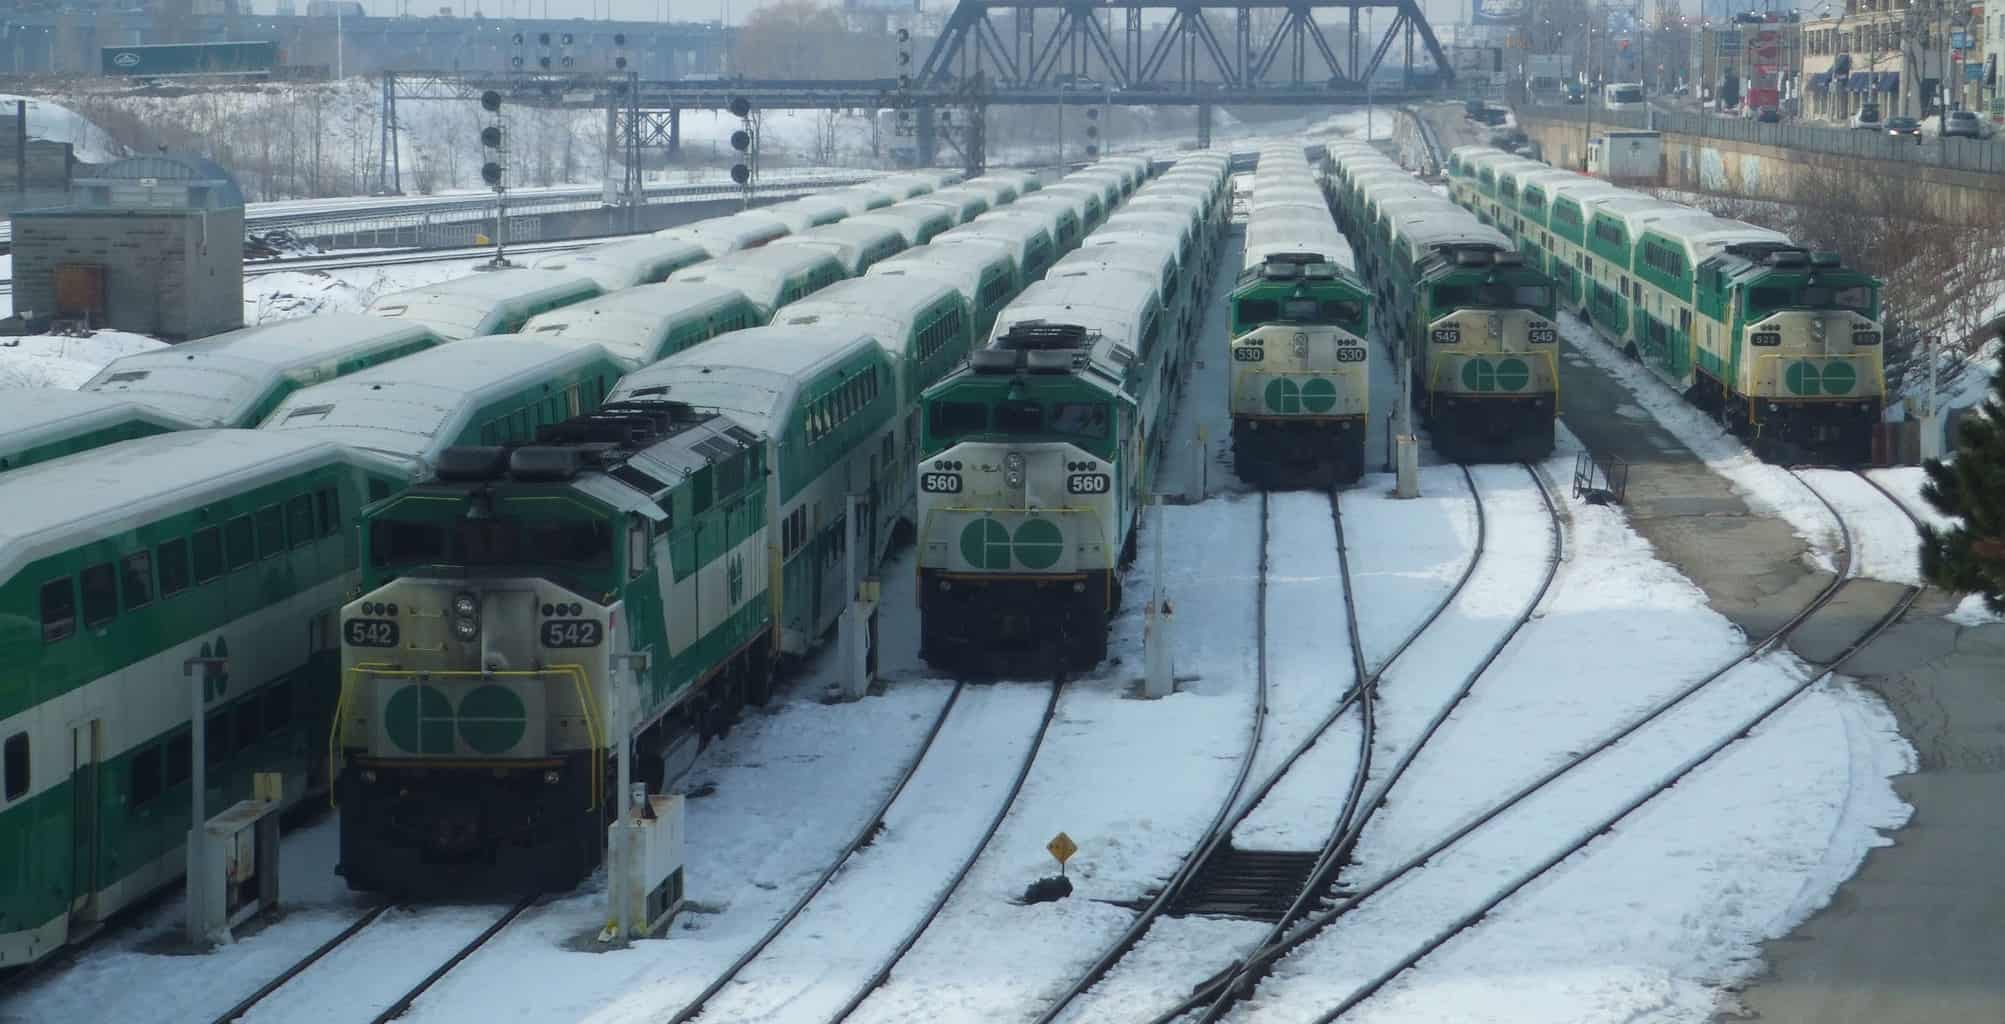 GO trains in Niagara Falls